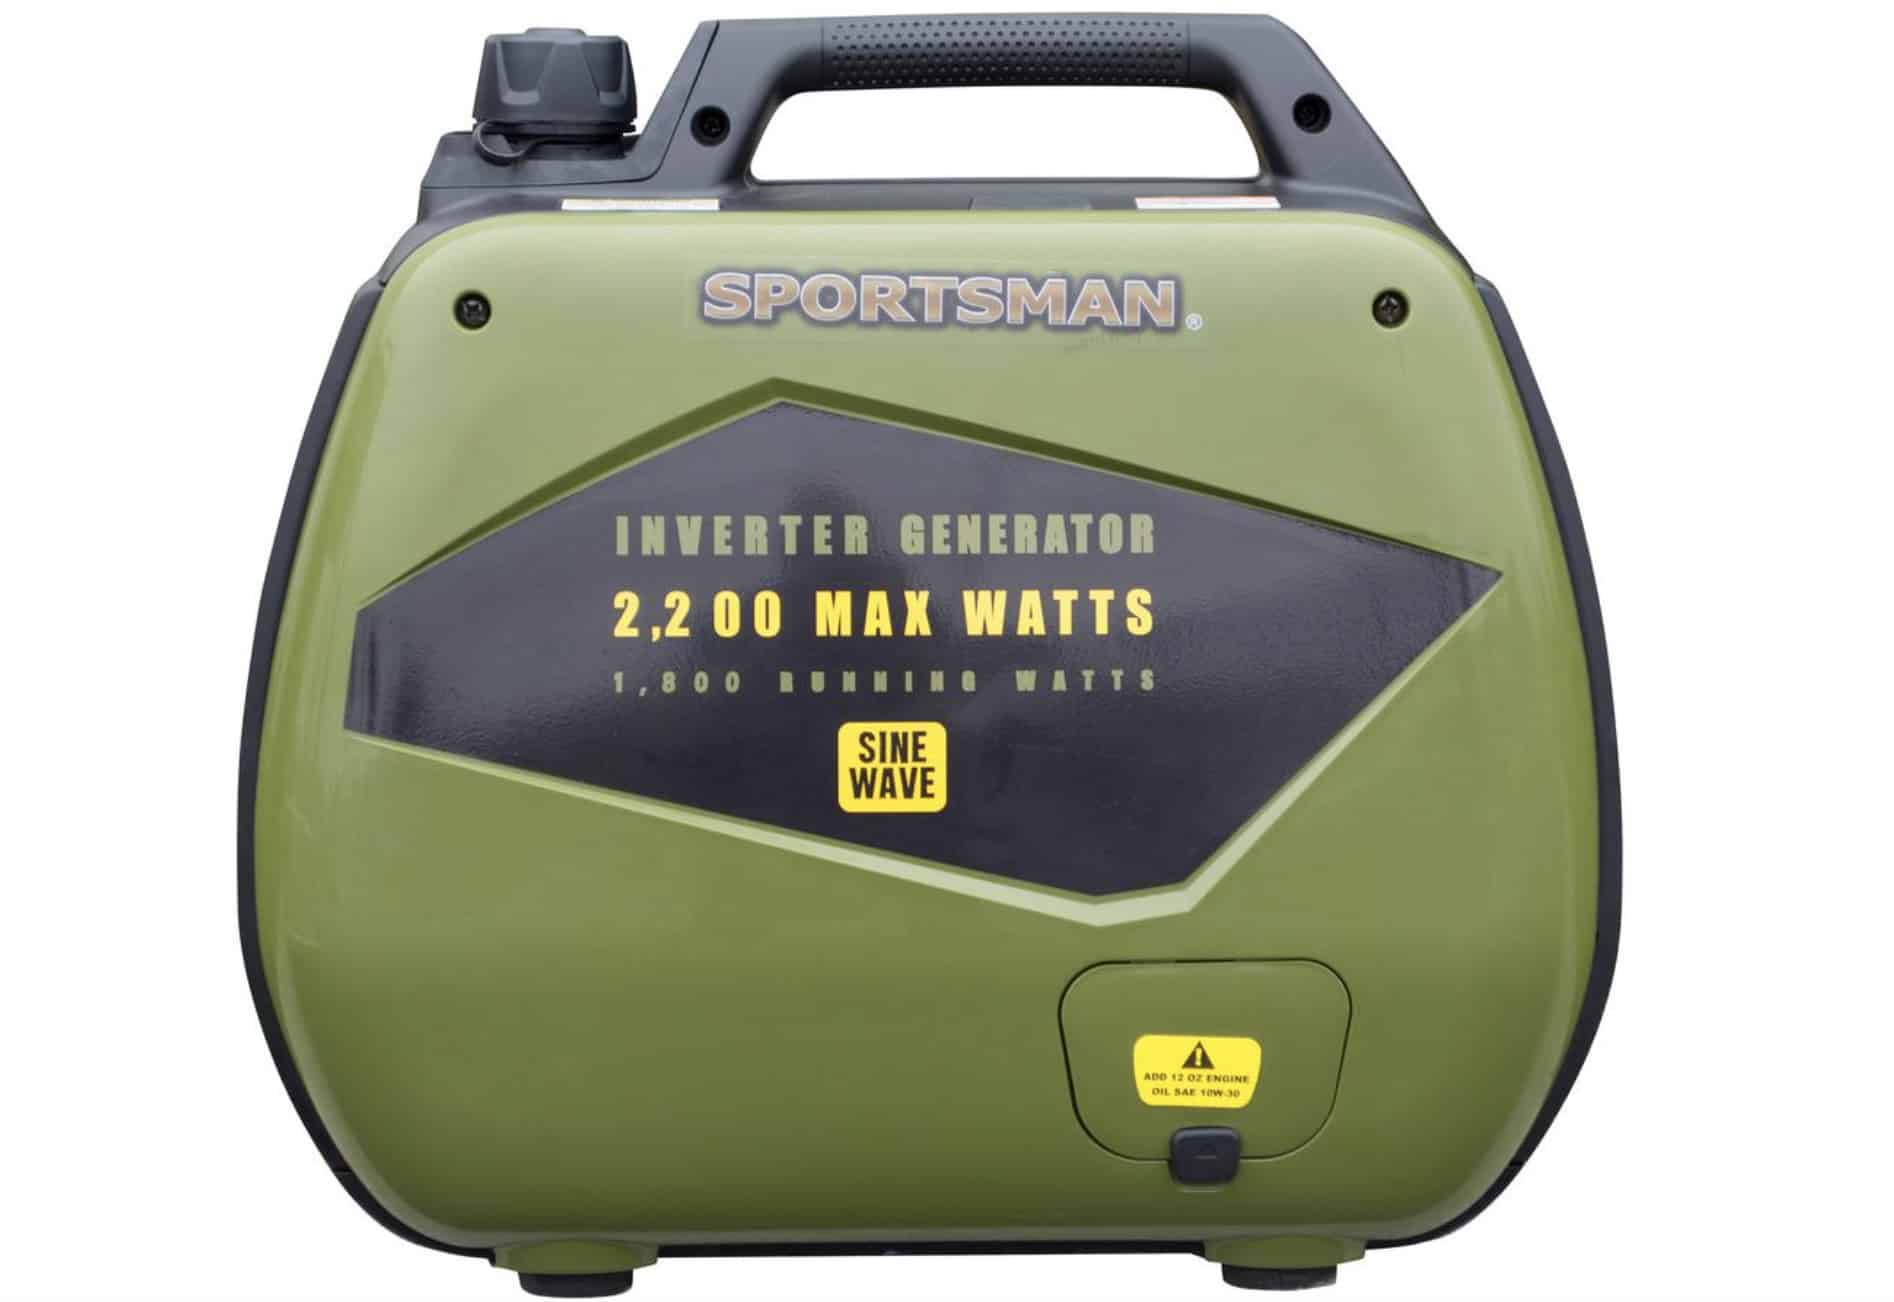 Sportsman 2200 Watt Dual Fuel inverter Generator